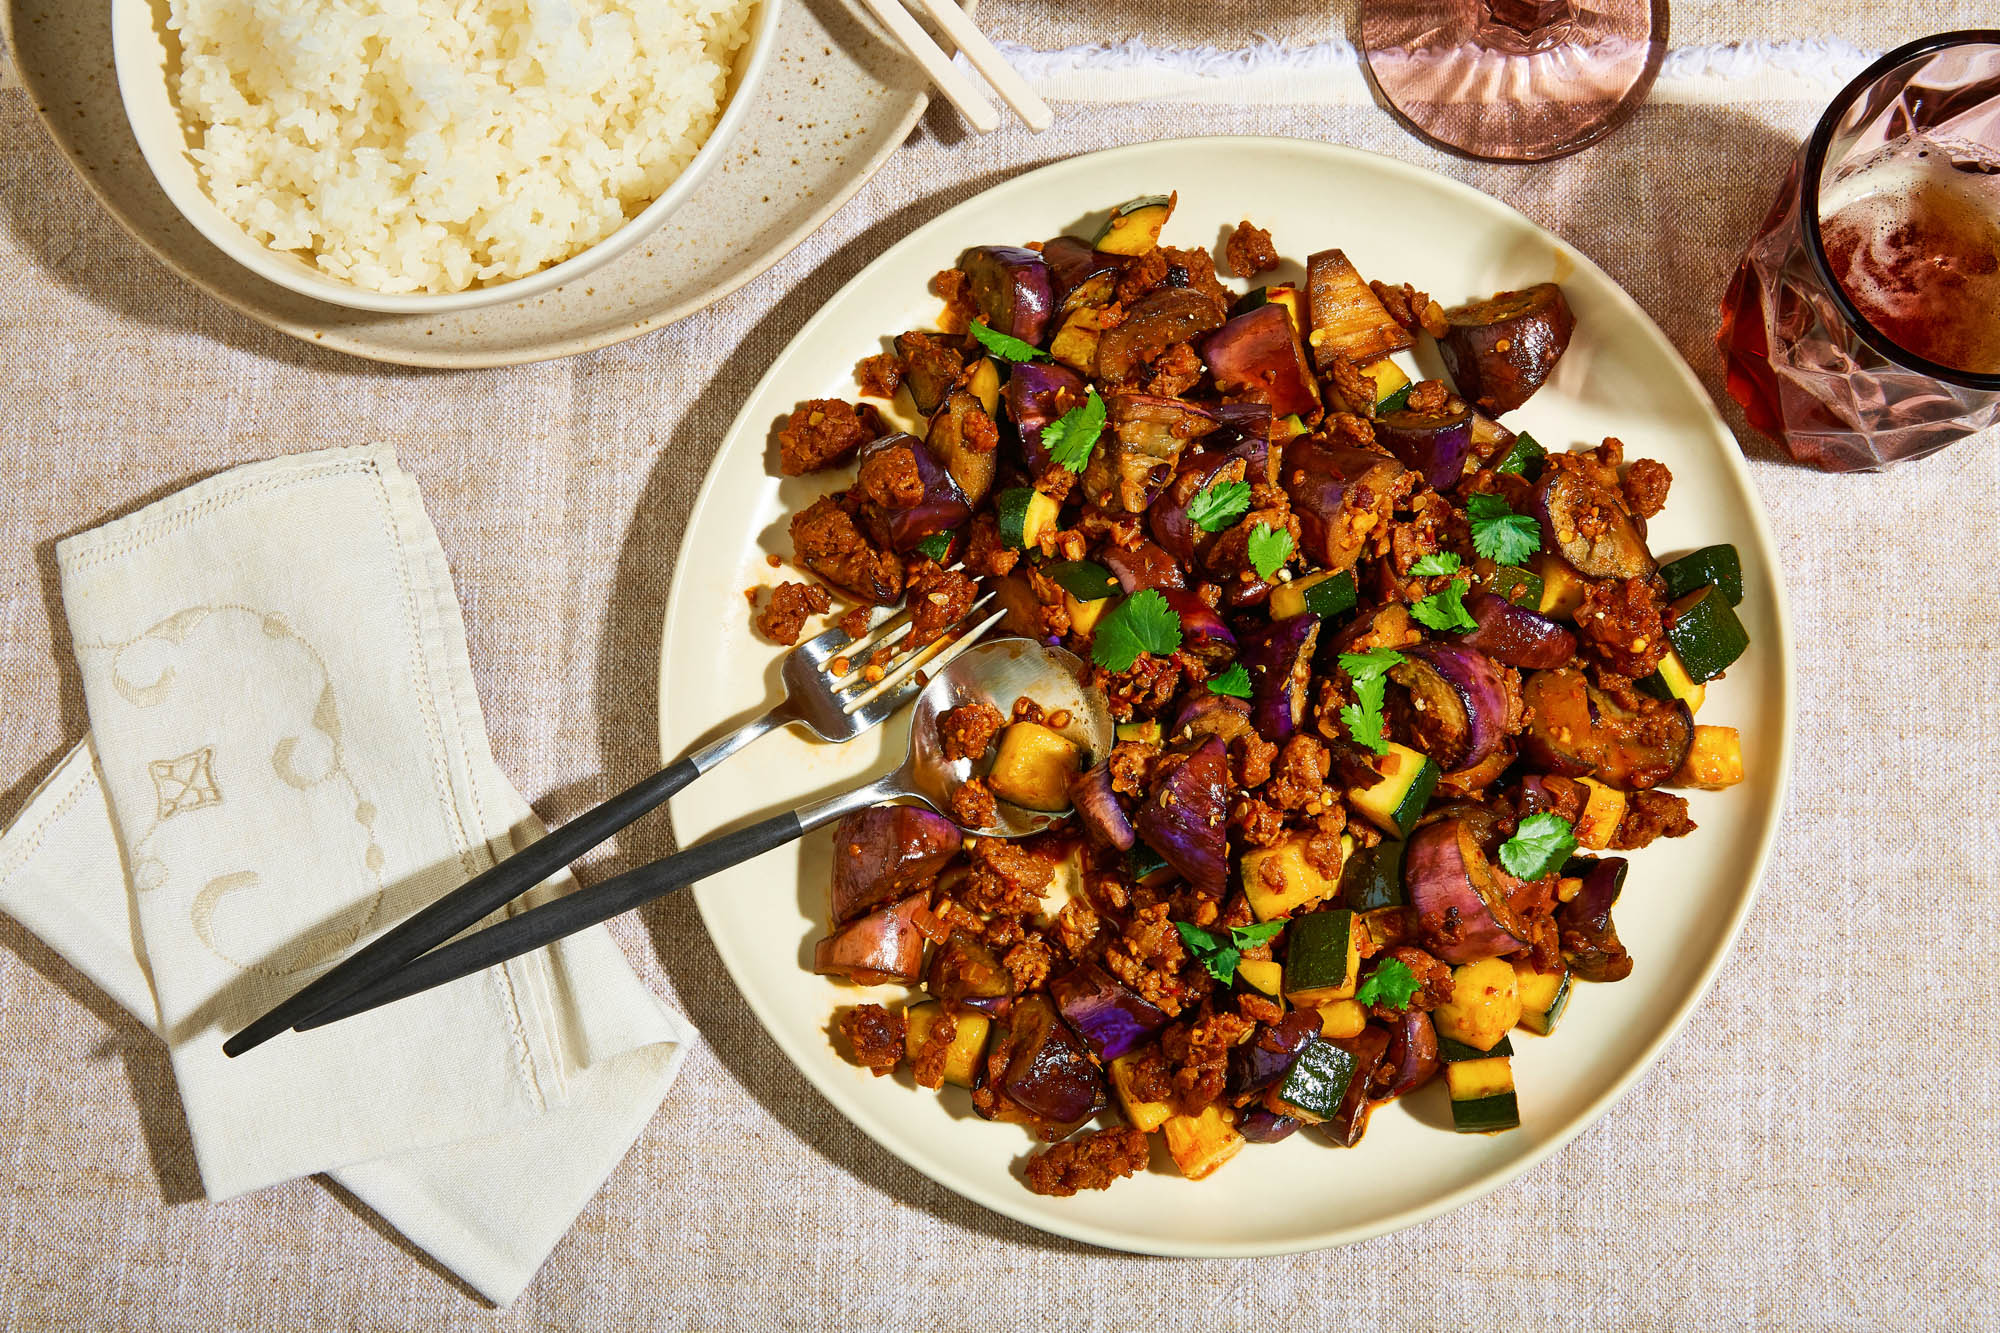 Eggplant and Chili Garlic Stir-Fry with Plant-Based Meat